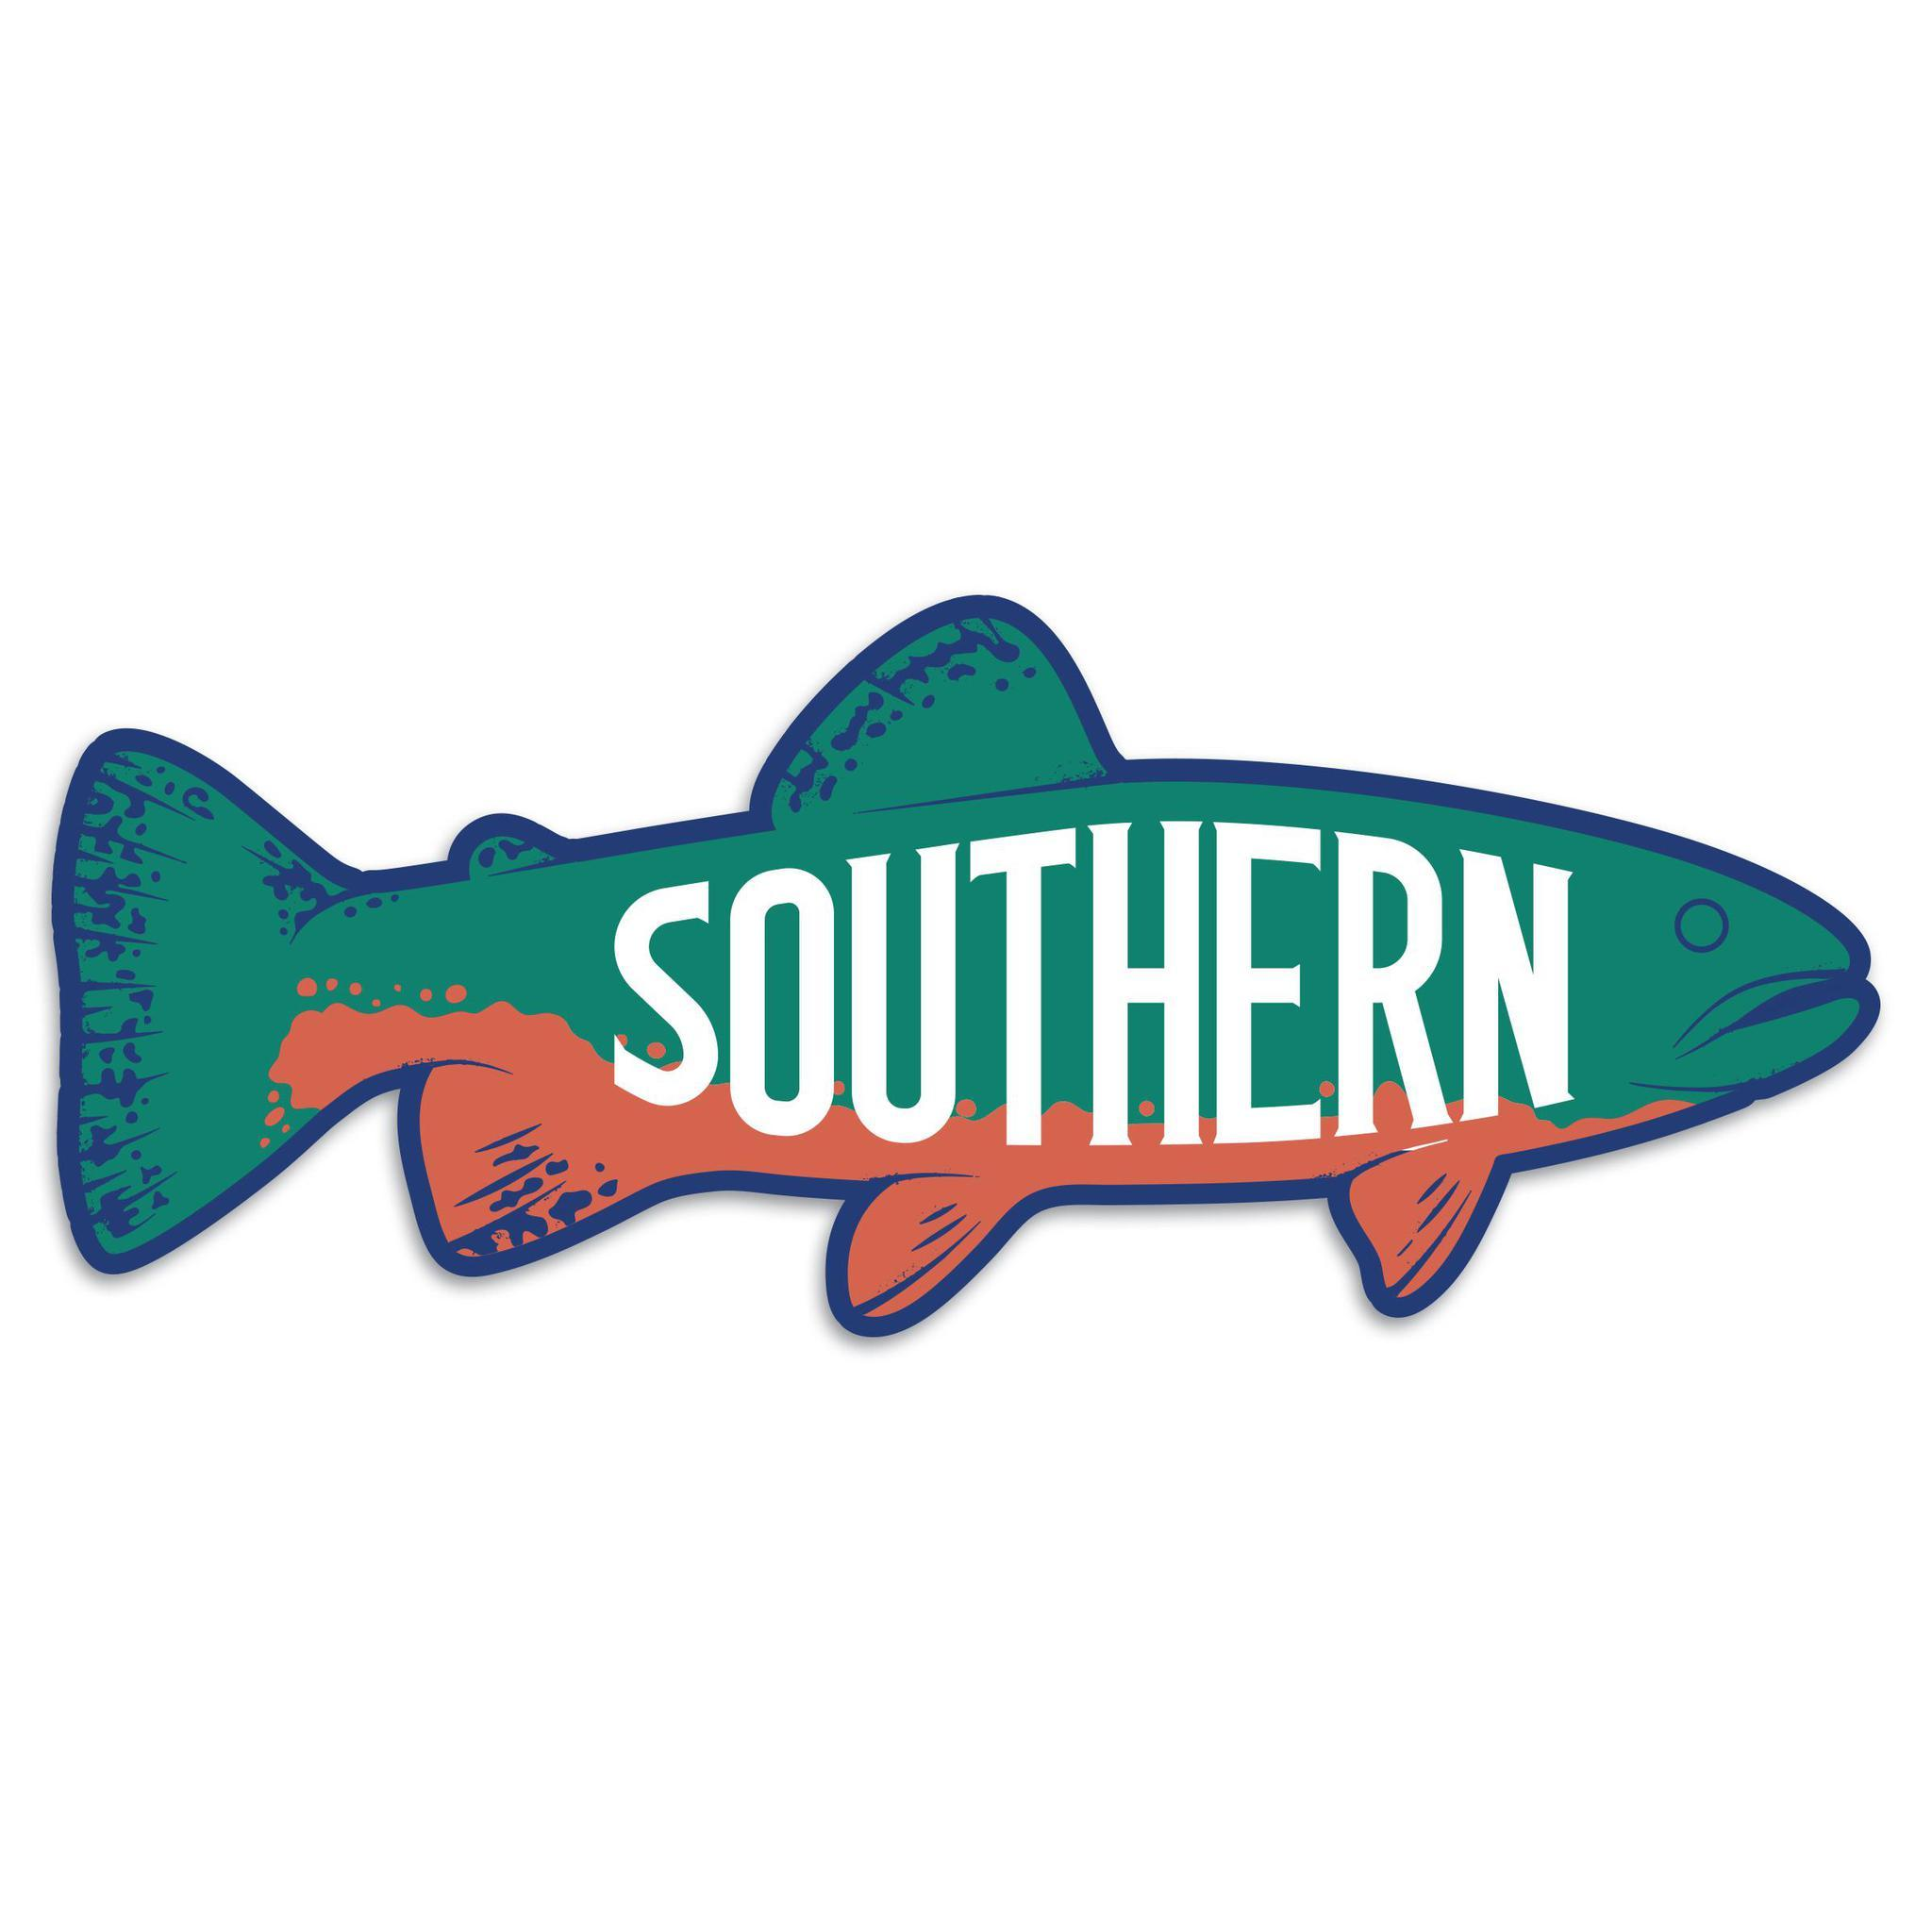 Southern Brook Sticker-Southern Socks